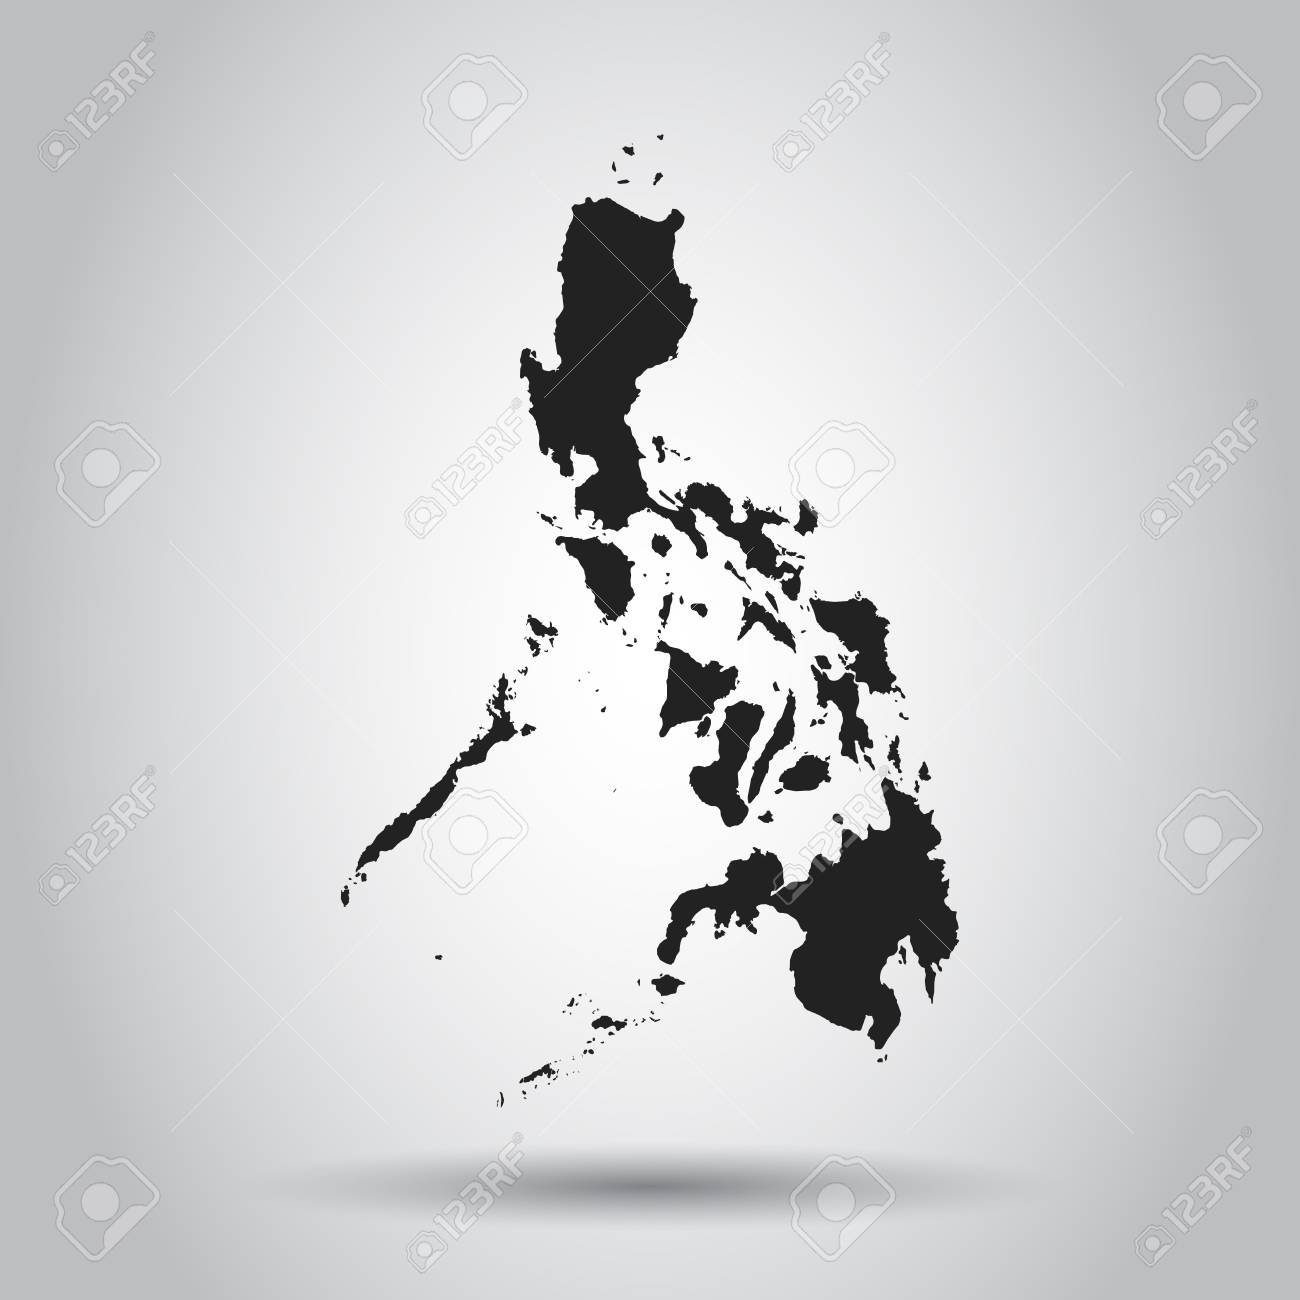 Philippines Map Black And White.Philippines Vector Map Black Icon On White Background Royalty Free